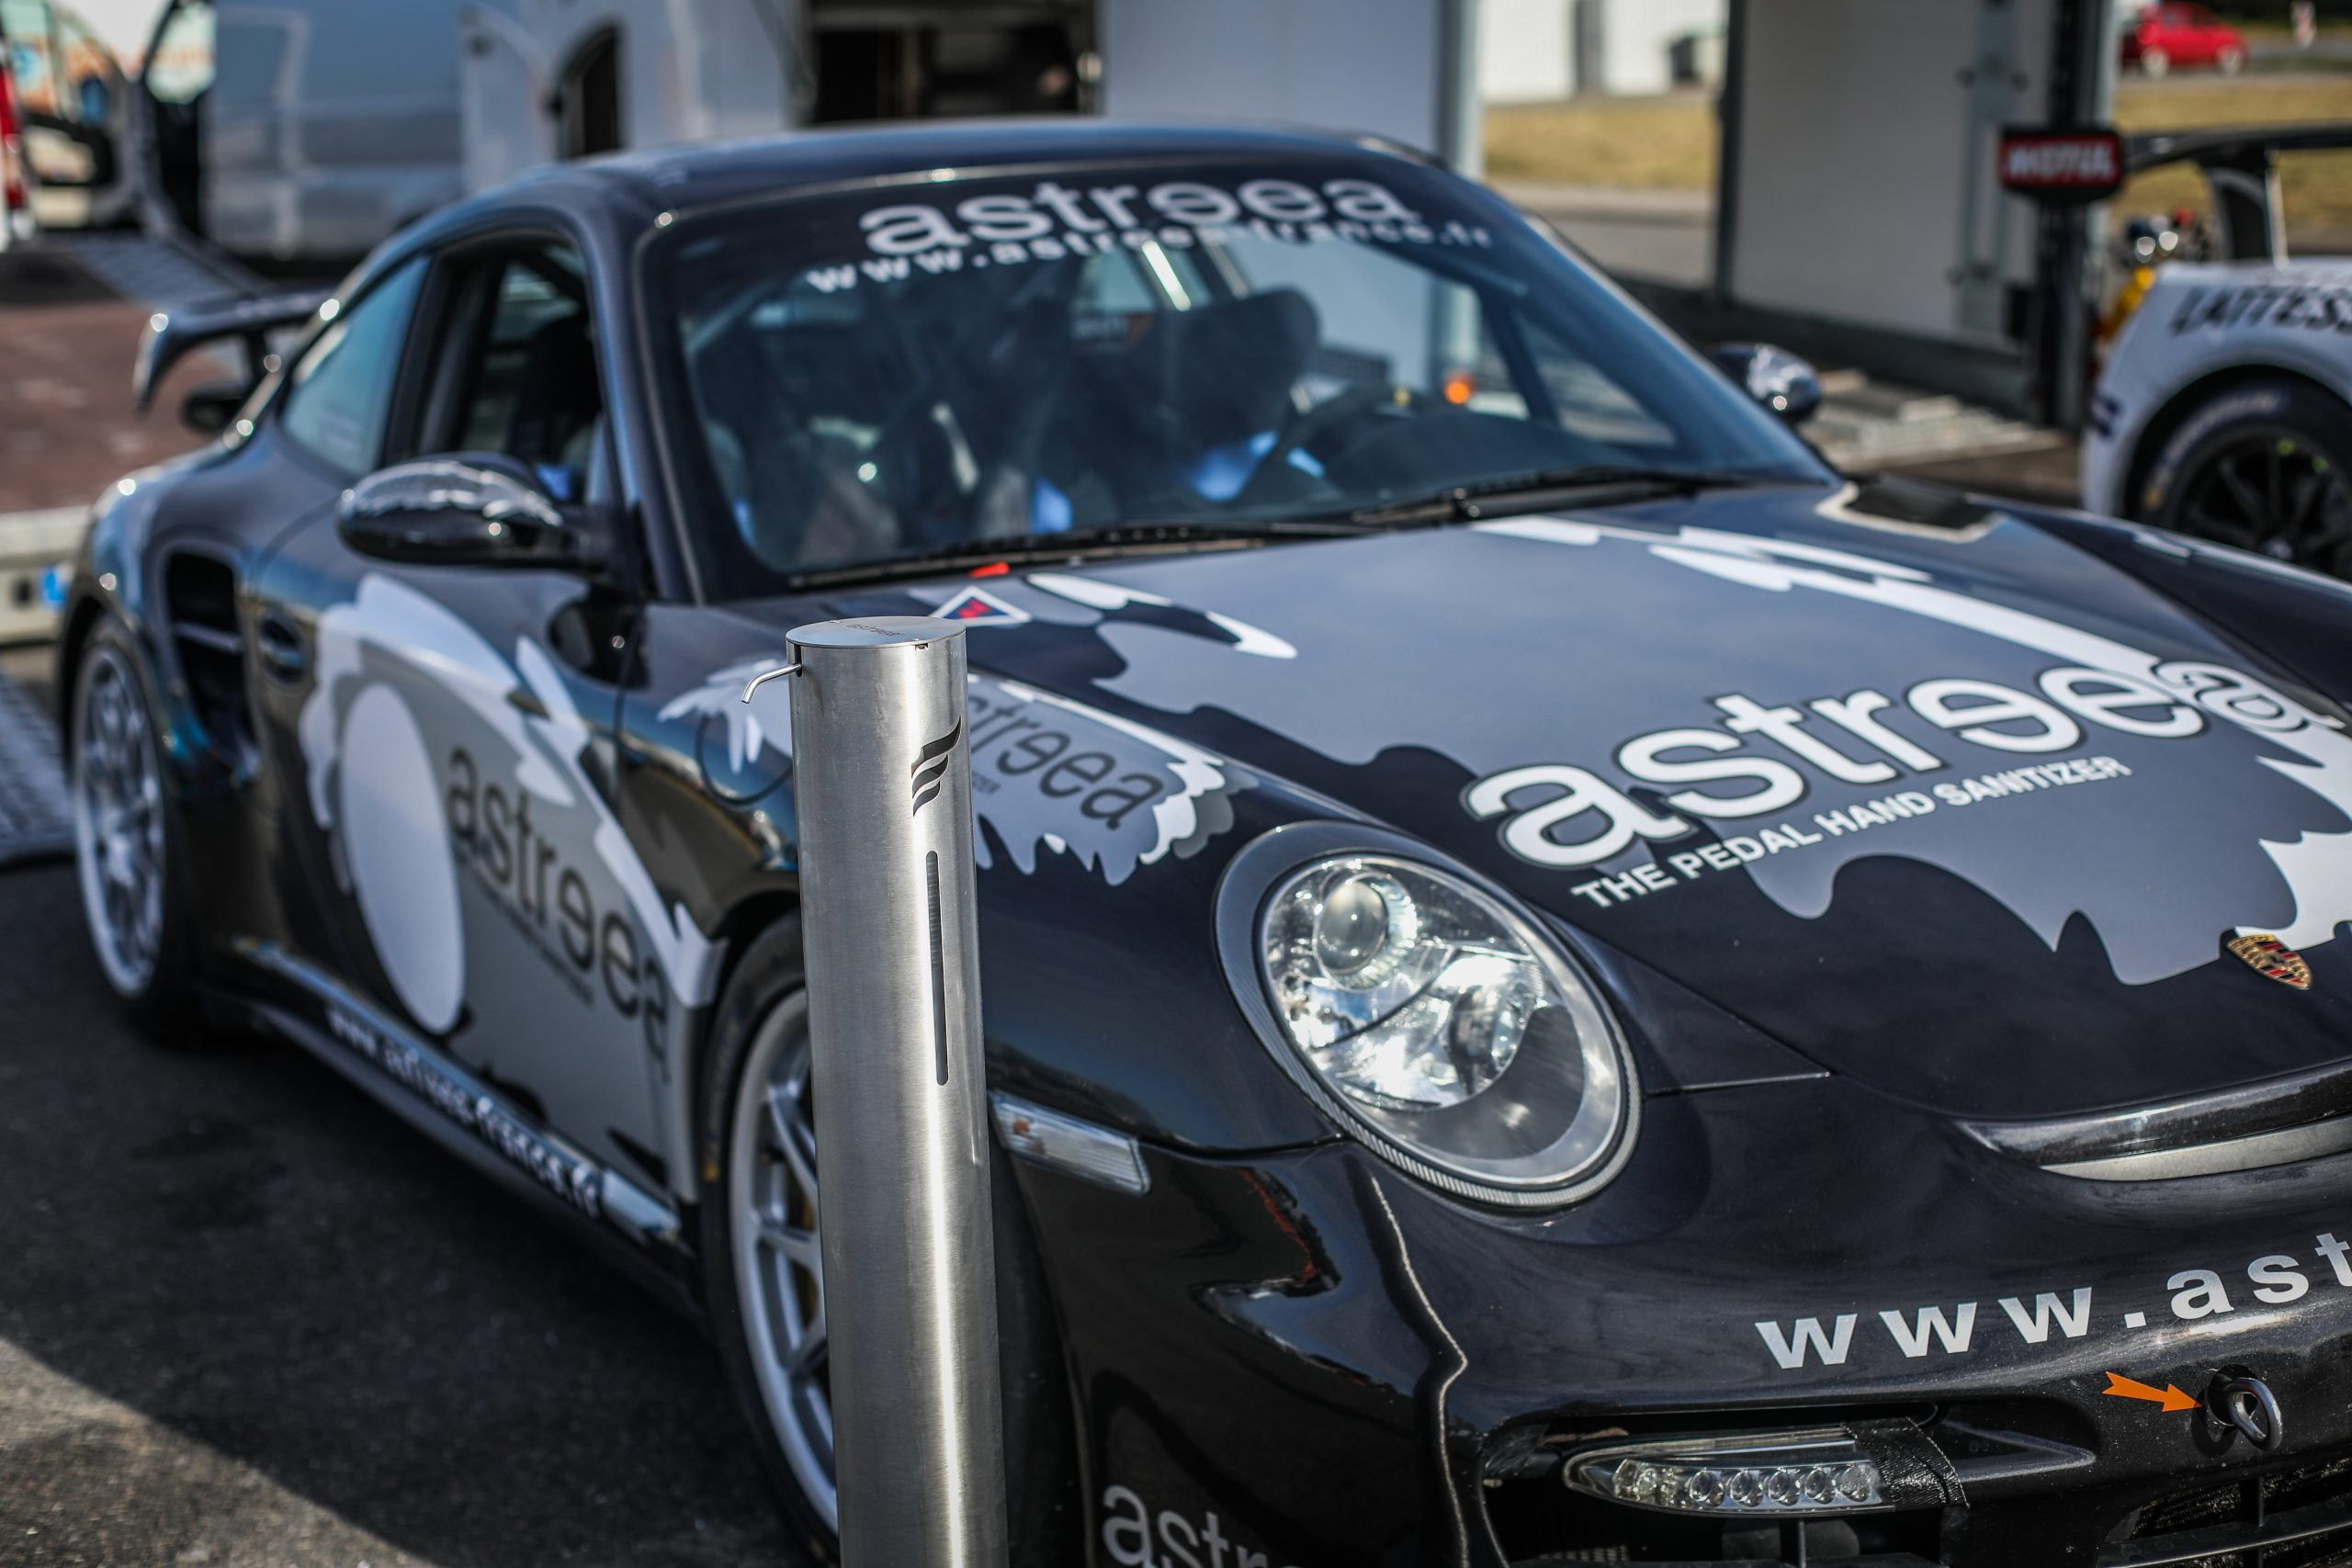 Astreea's Porsche GT2 purrs its way to the podium, in a wild hill climbing race in France!